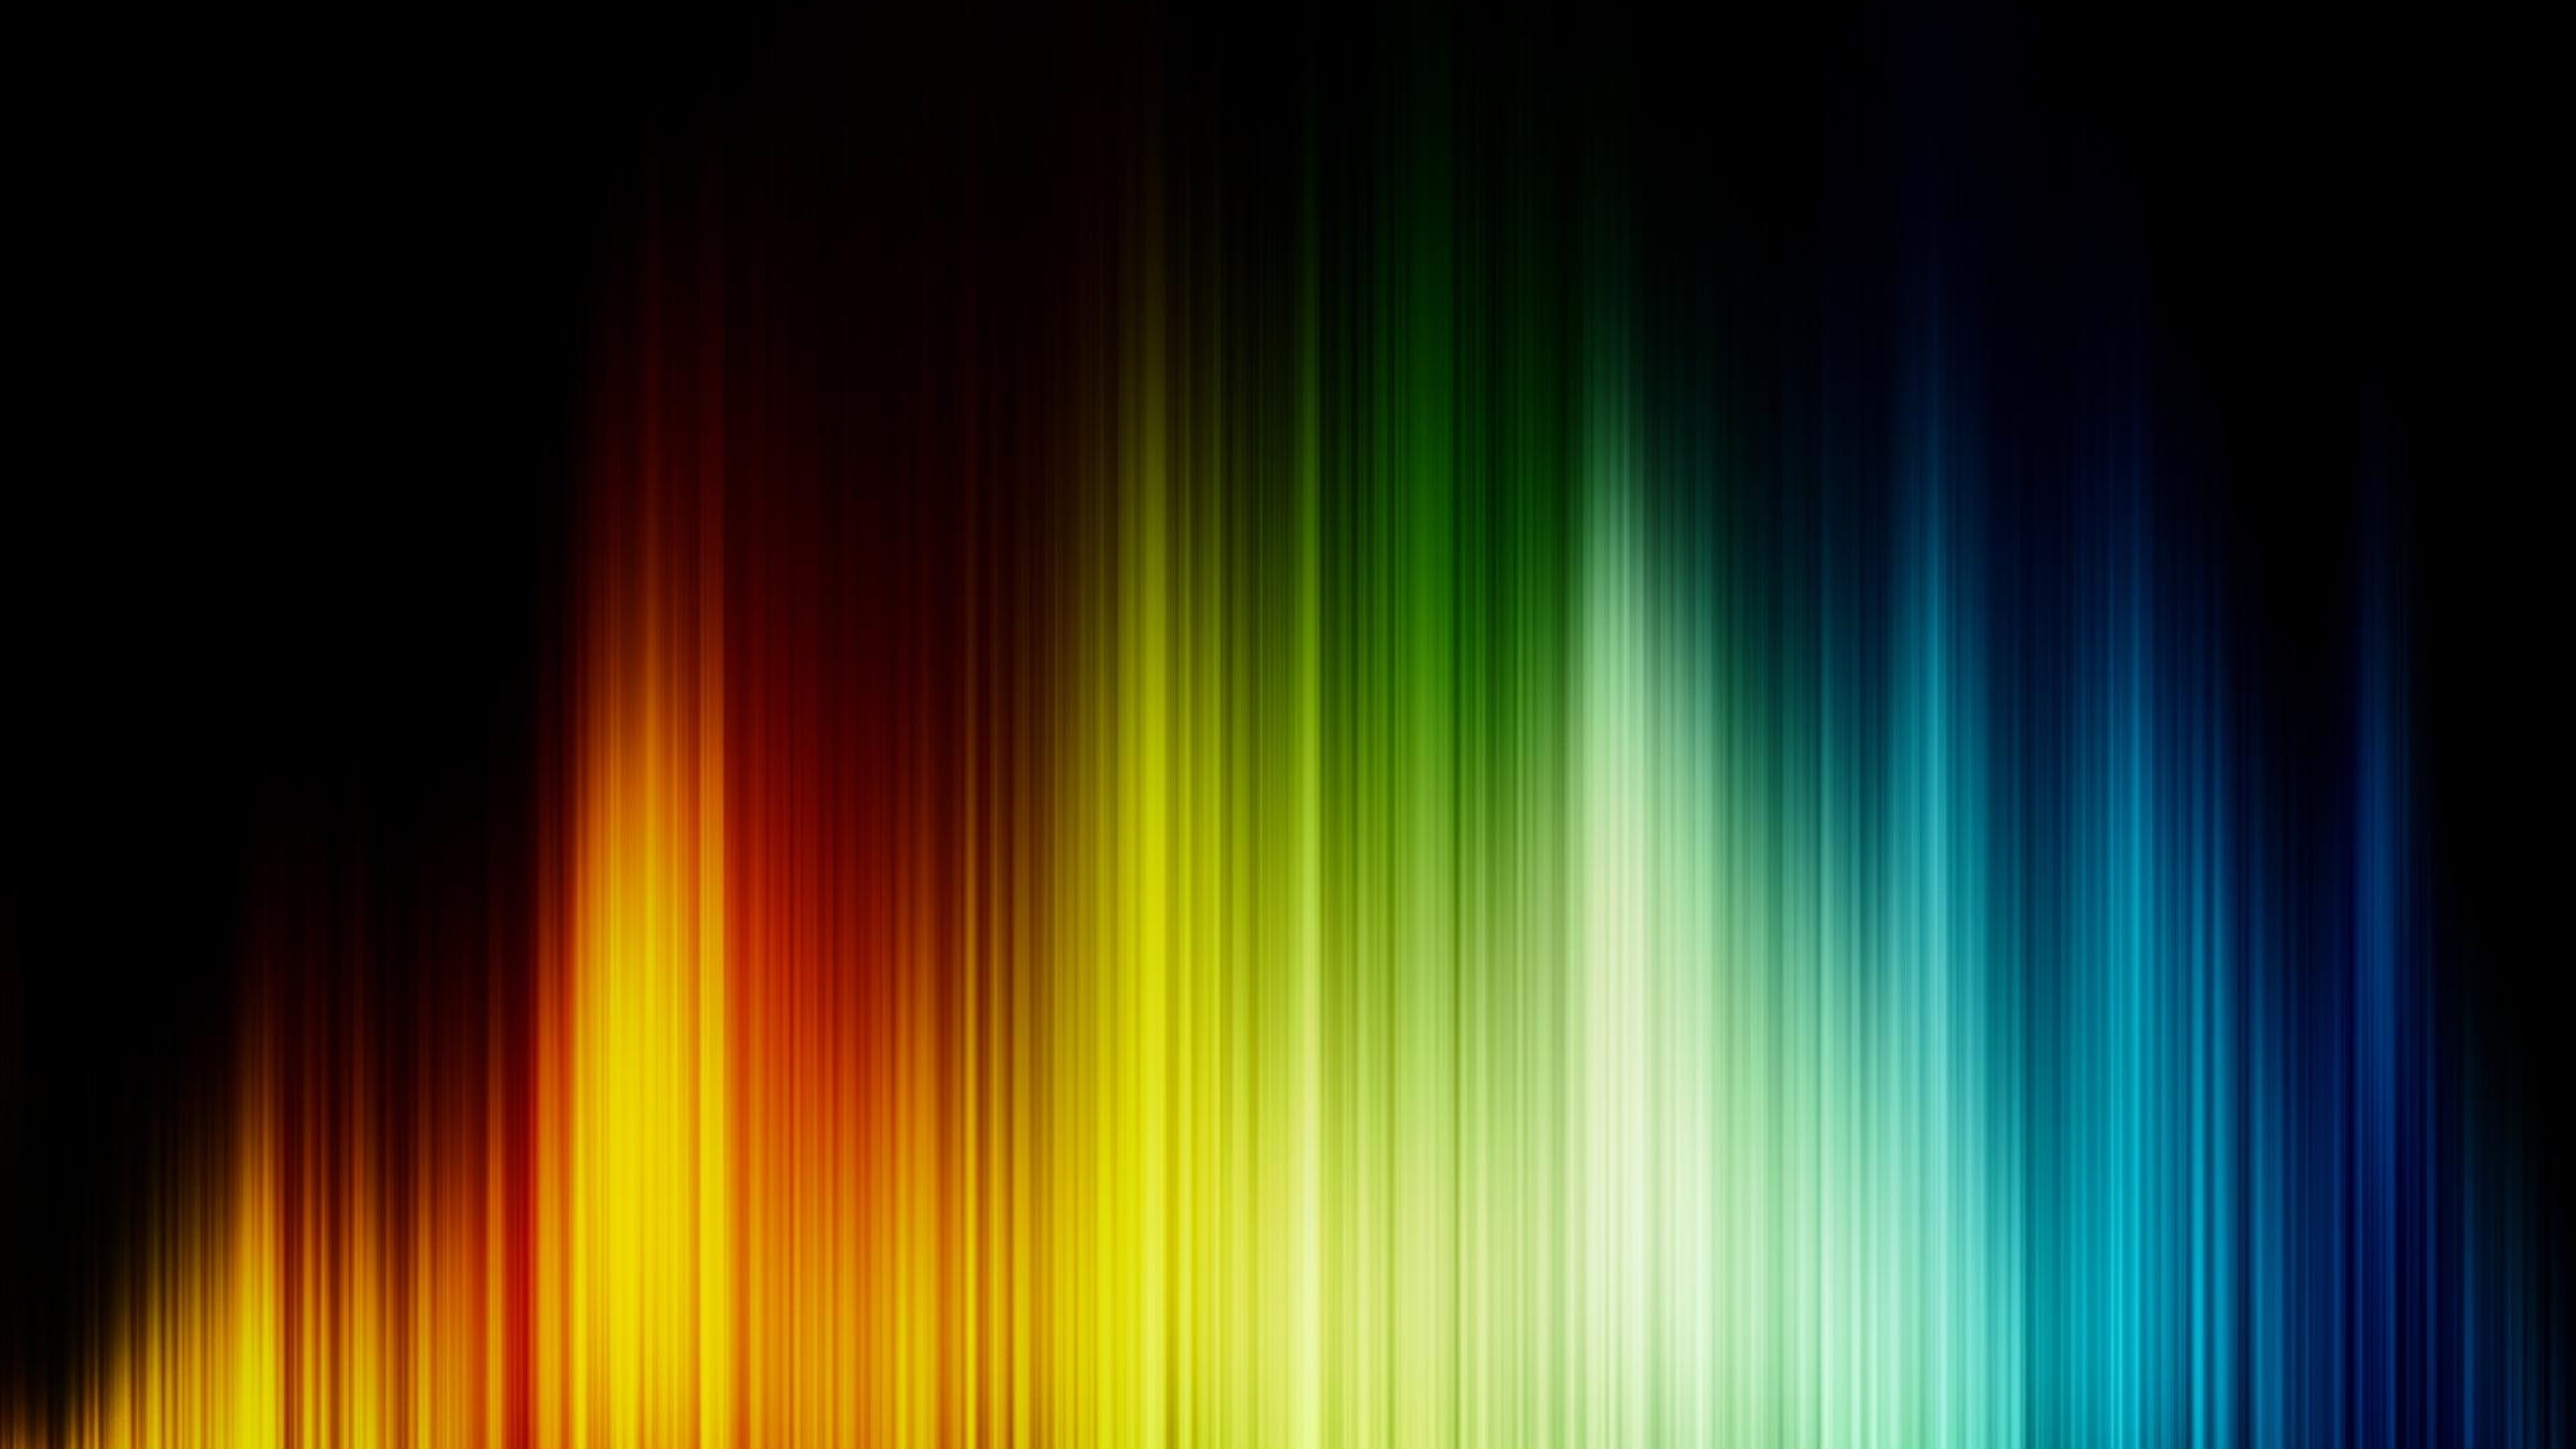 4K Rainbow Wallpapers High Quality